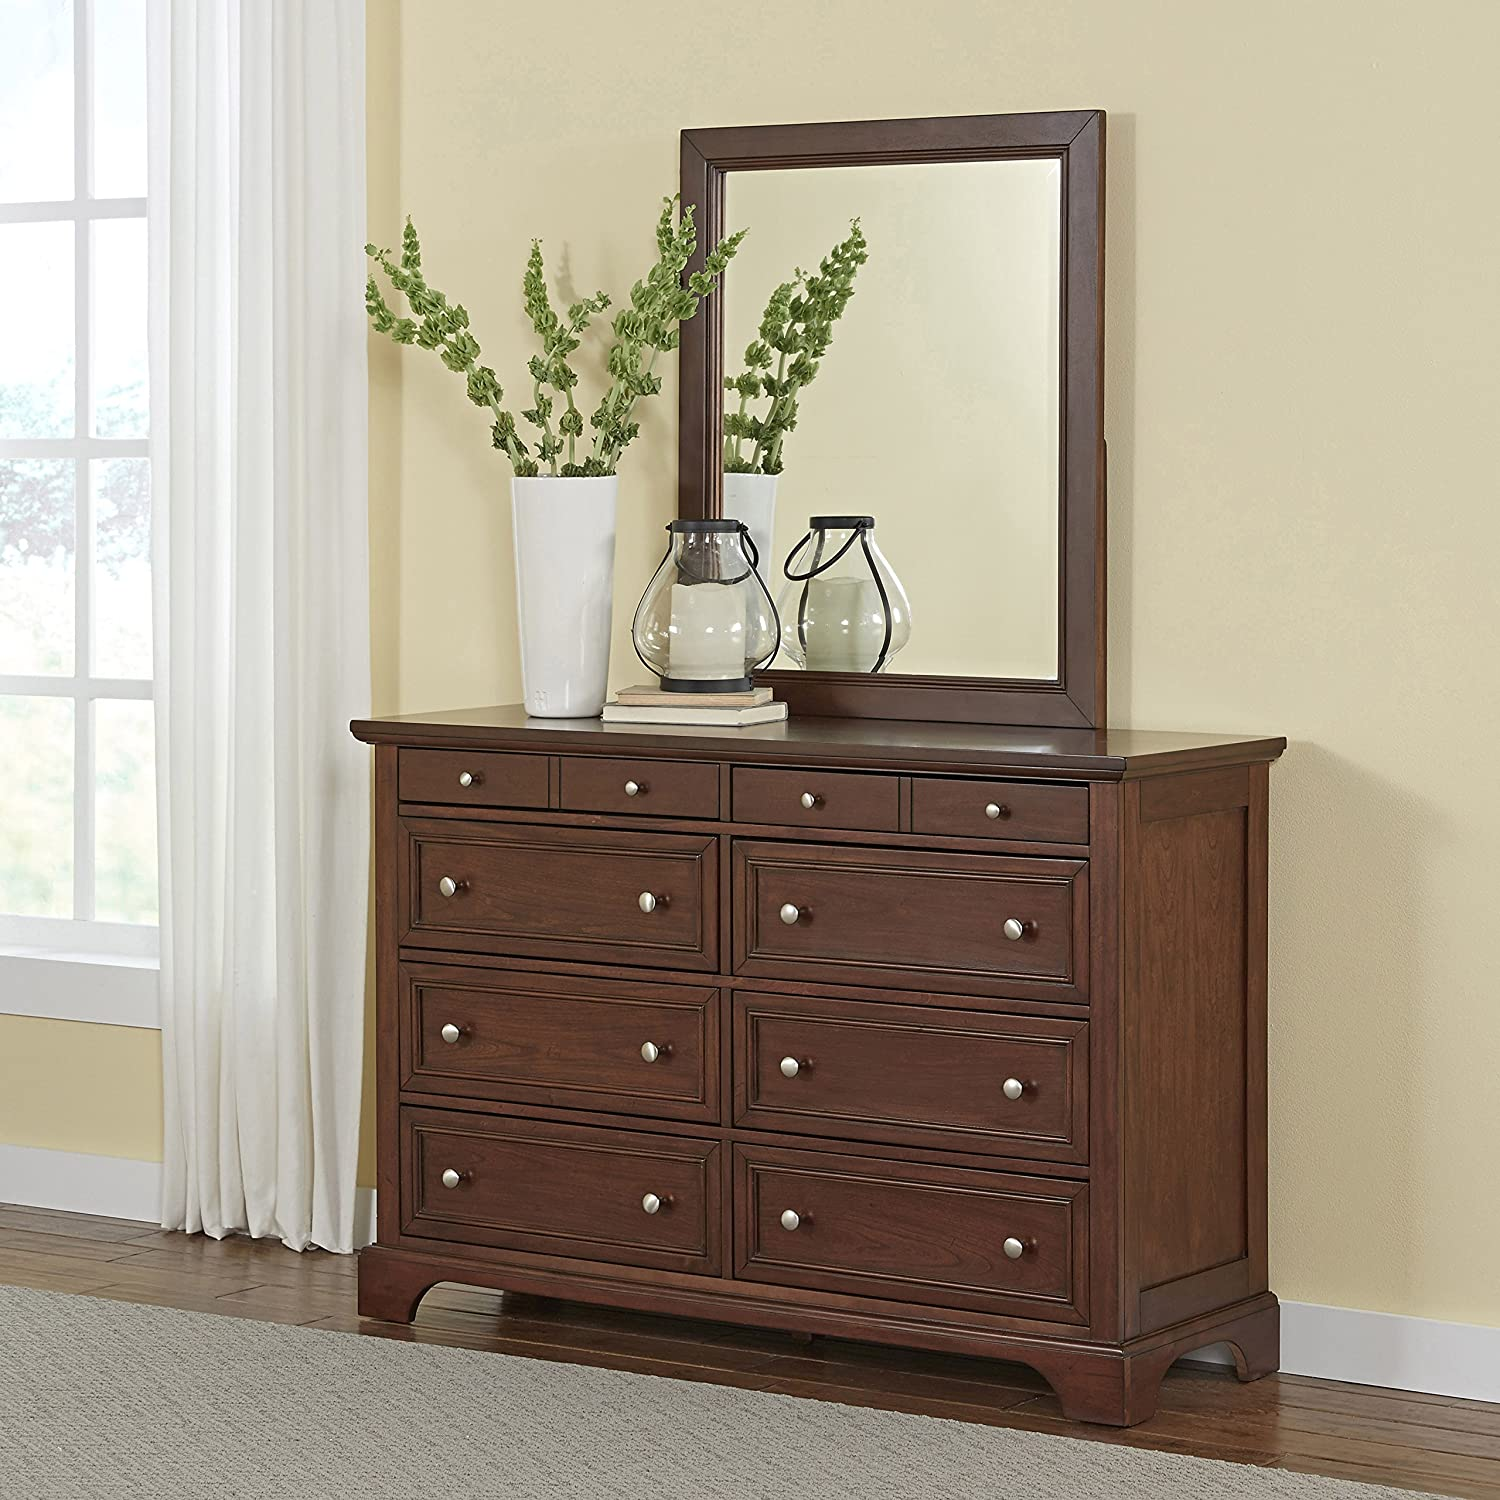 furniture dowson reviews with drawer mirror pdx wayfair dresser interiors willa arlo